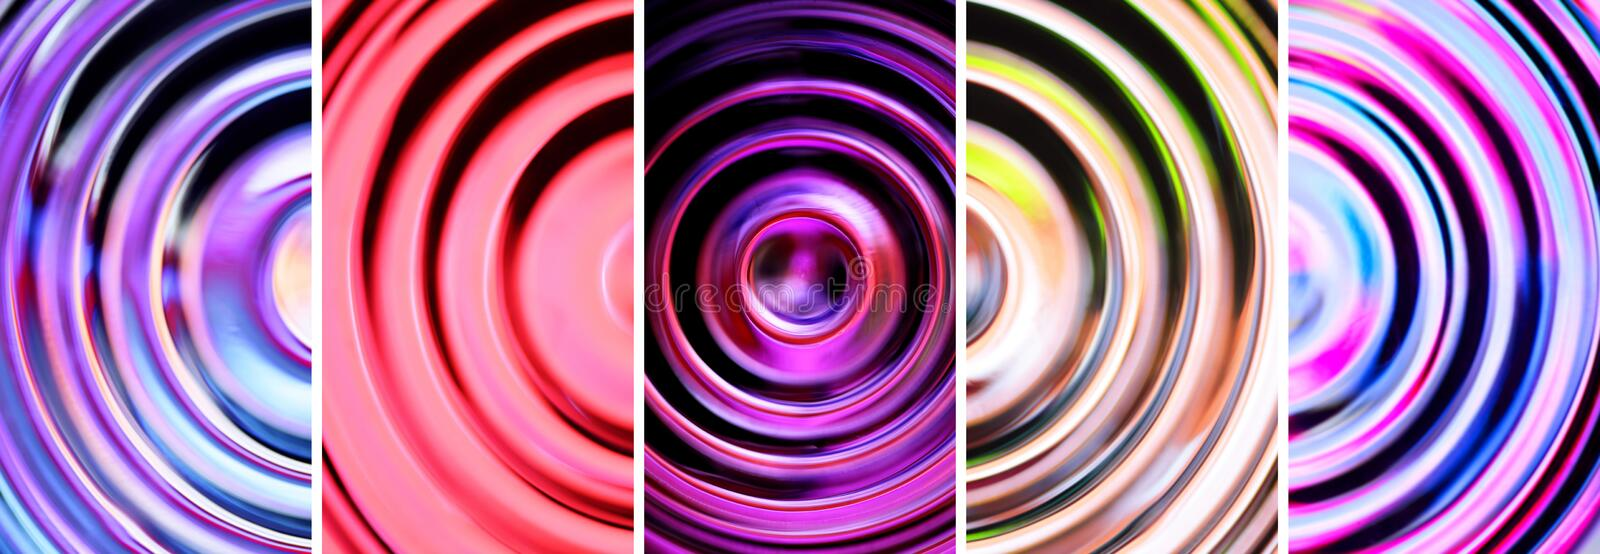 Abstract backgrounds with defocused concentric circles royalty free stock photography